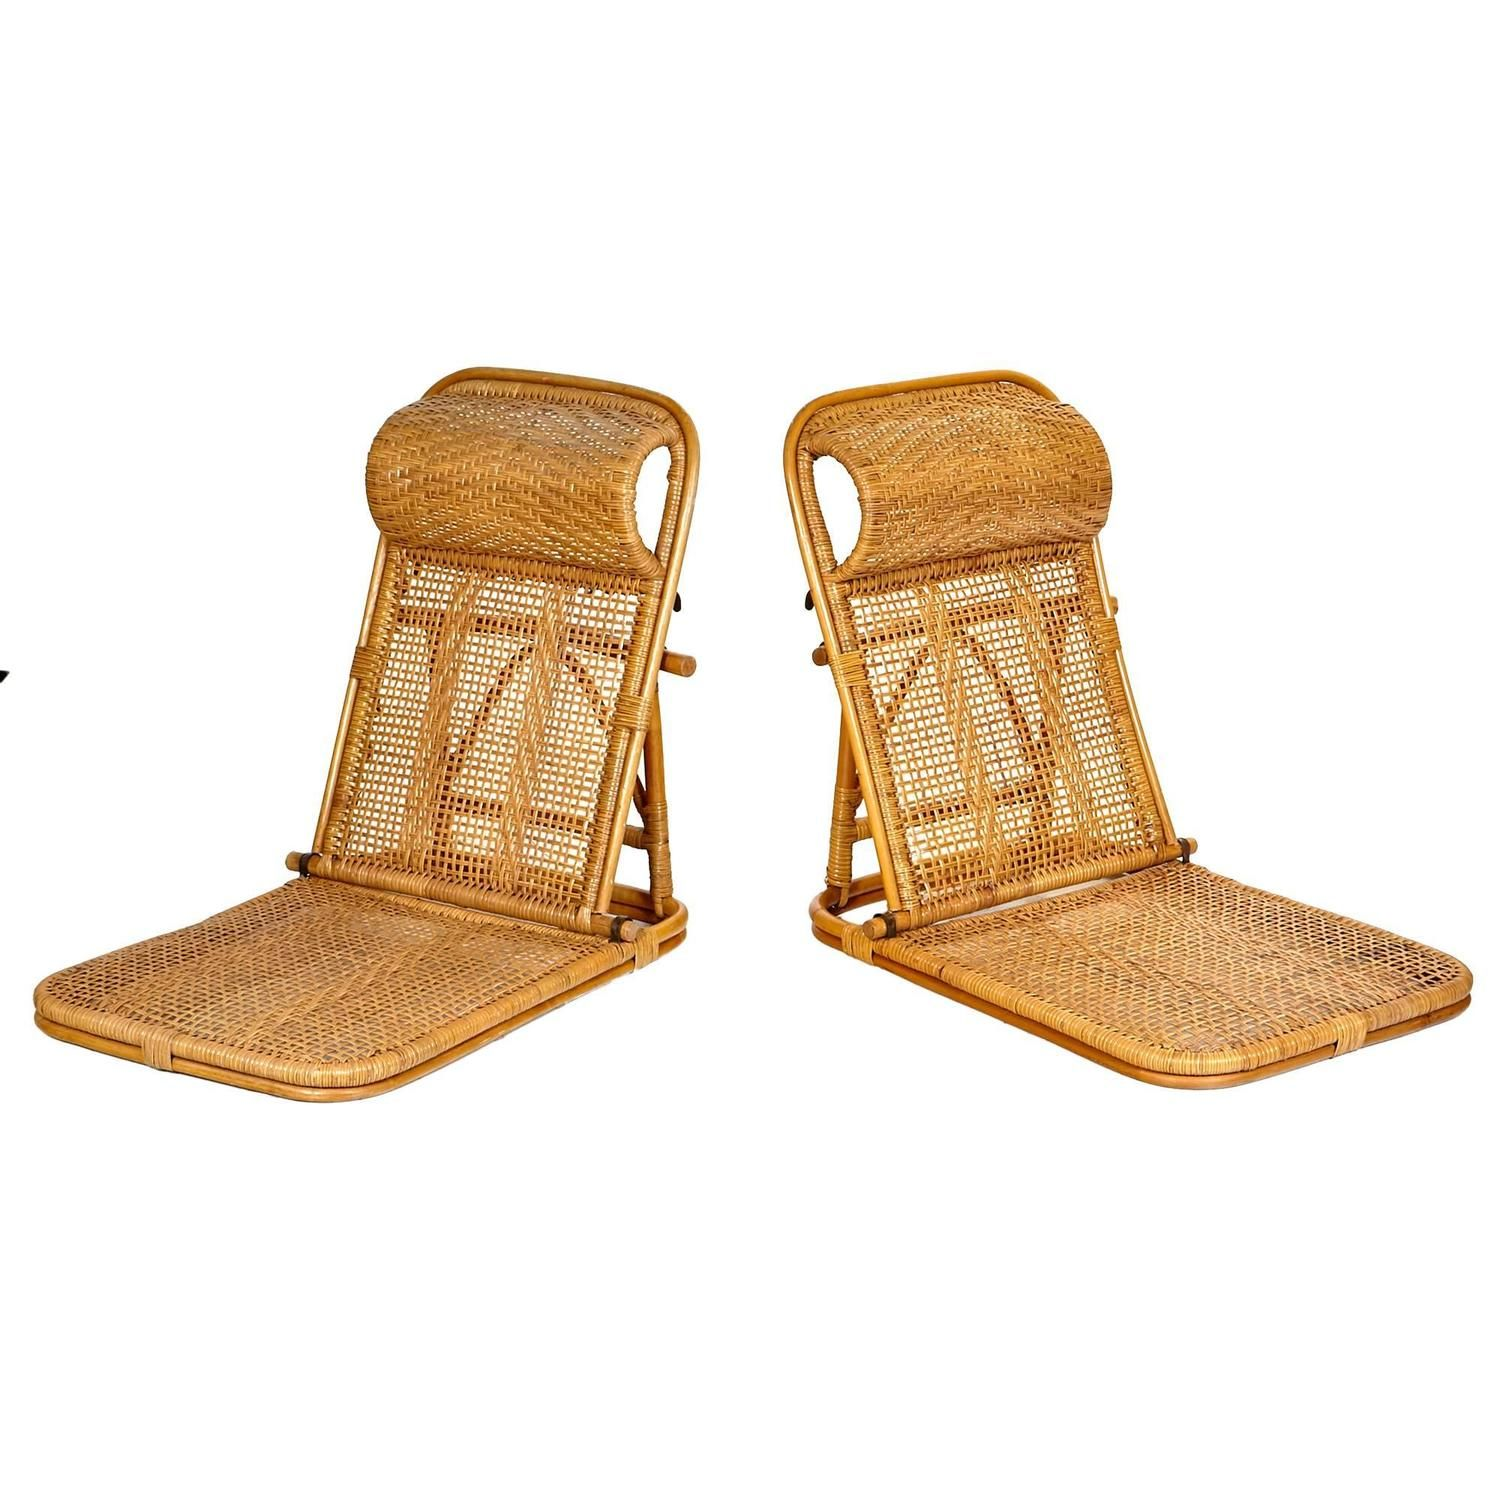 Rattan And Wicker Folding Beach Chairs Pair 1stdibs Com